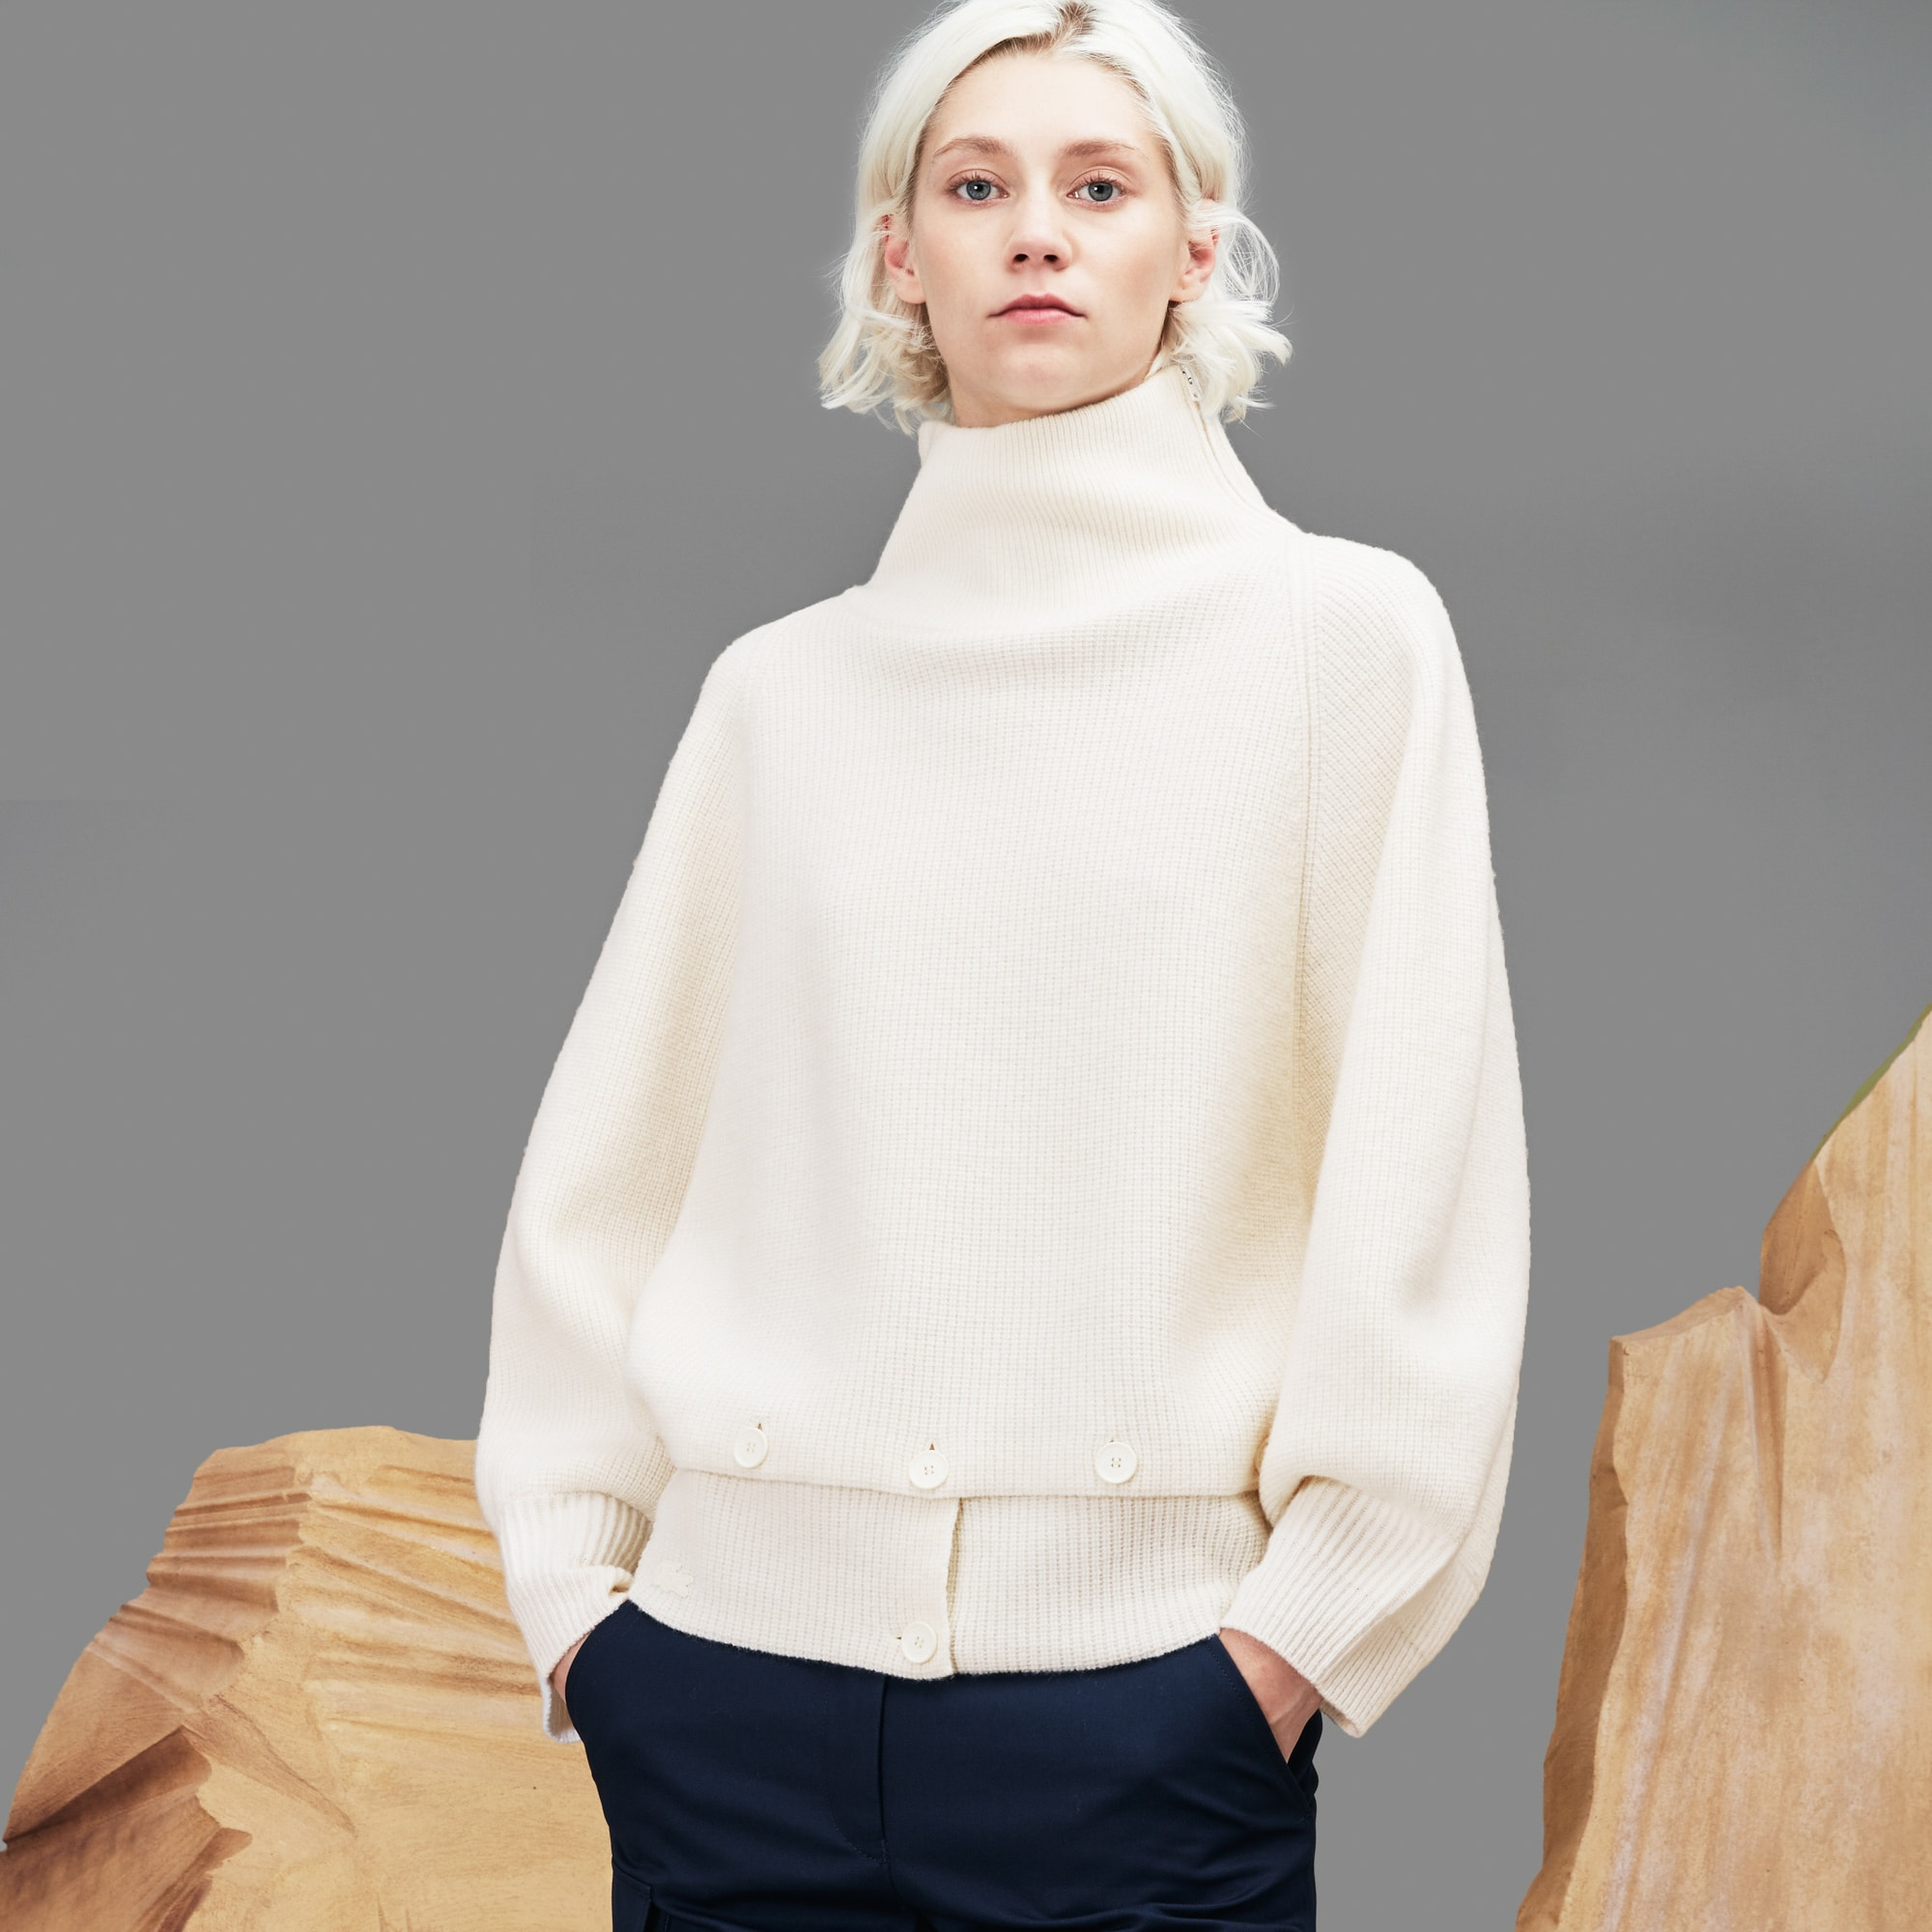 Women's Fashion Show Stand-Up Collar Ribbed Wool Sweater